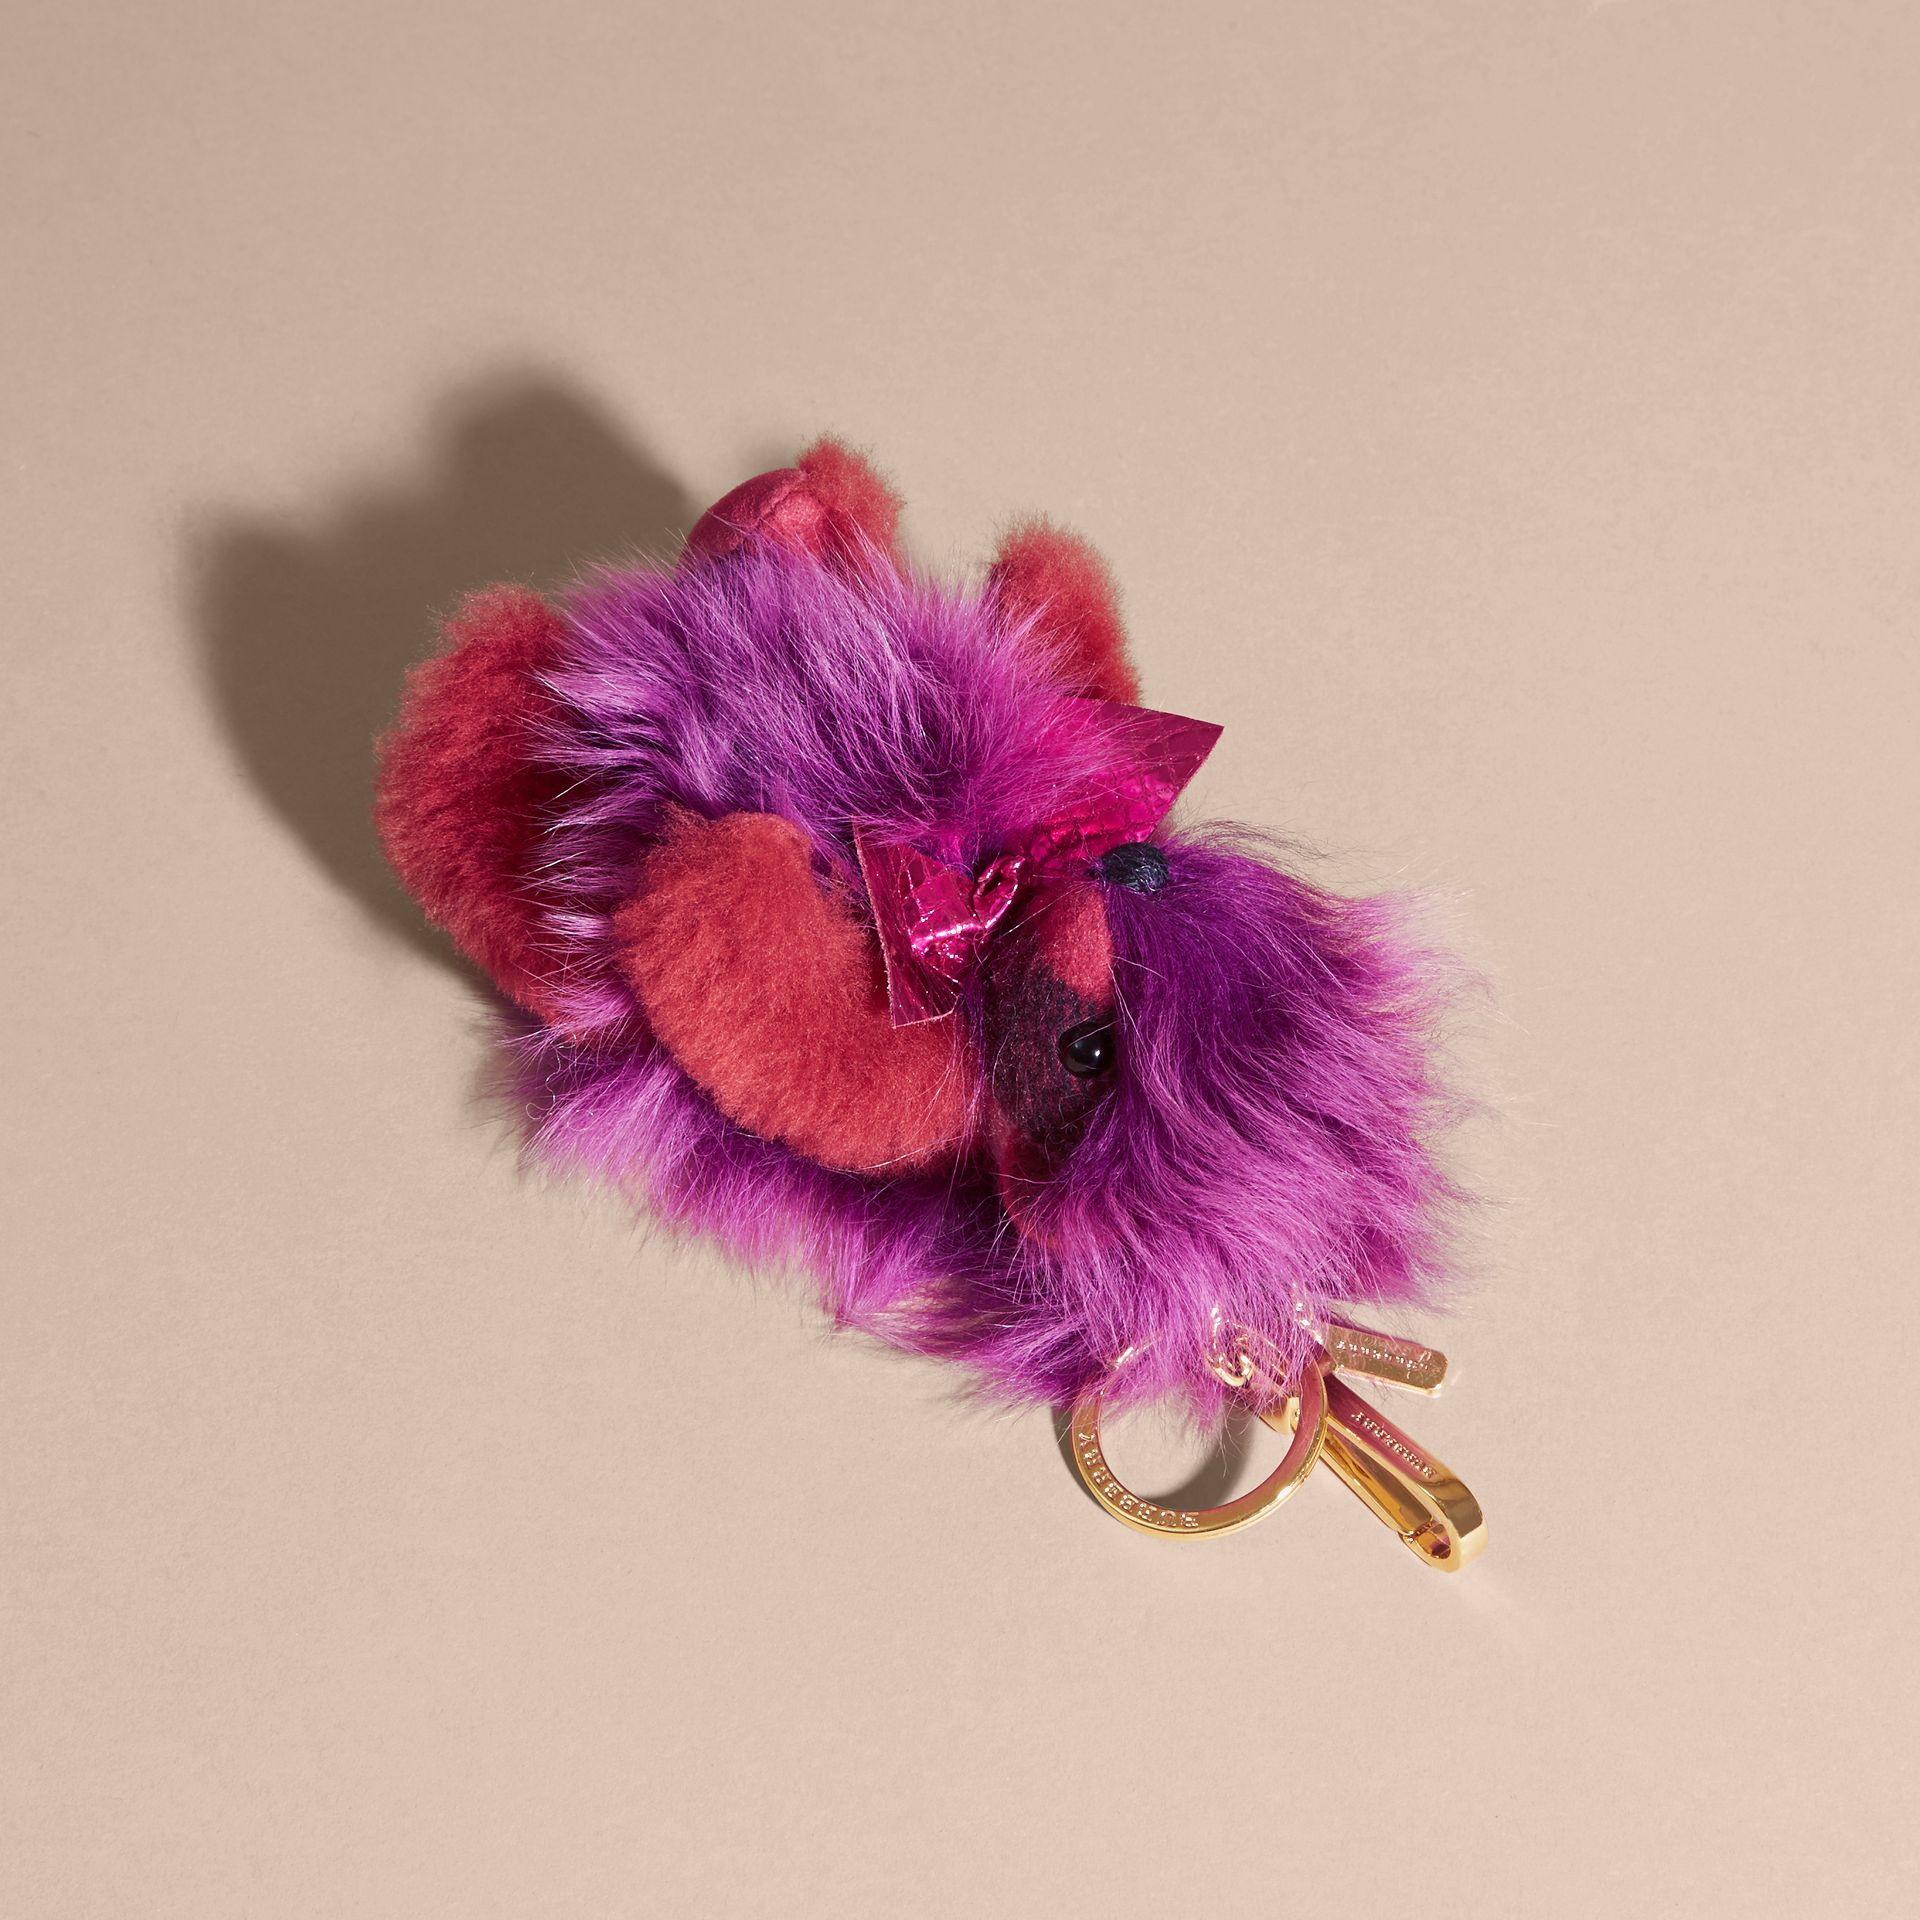 Thomas Bear Pom-Pom Charm in Check Cashmere in Fuchsia Pink - Women | Burberry - gallery image 3